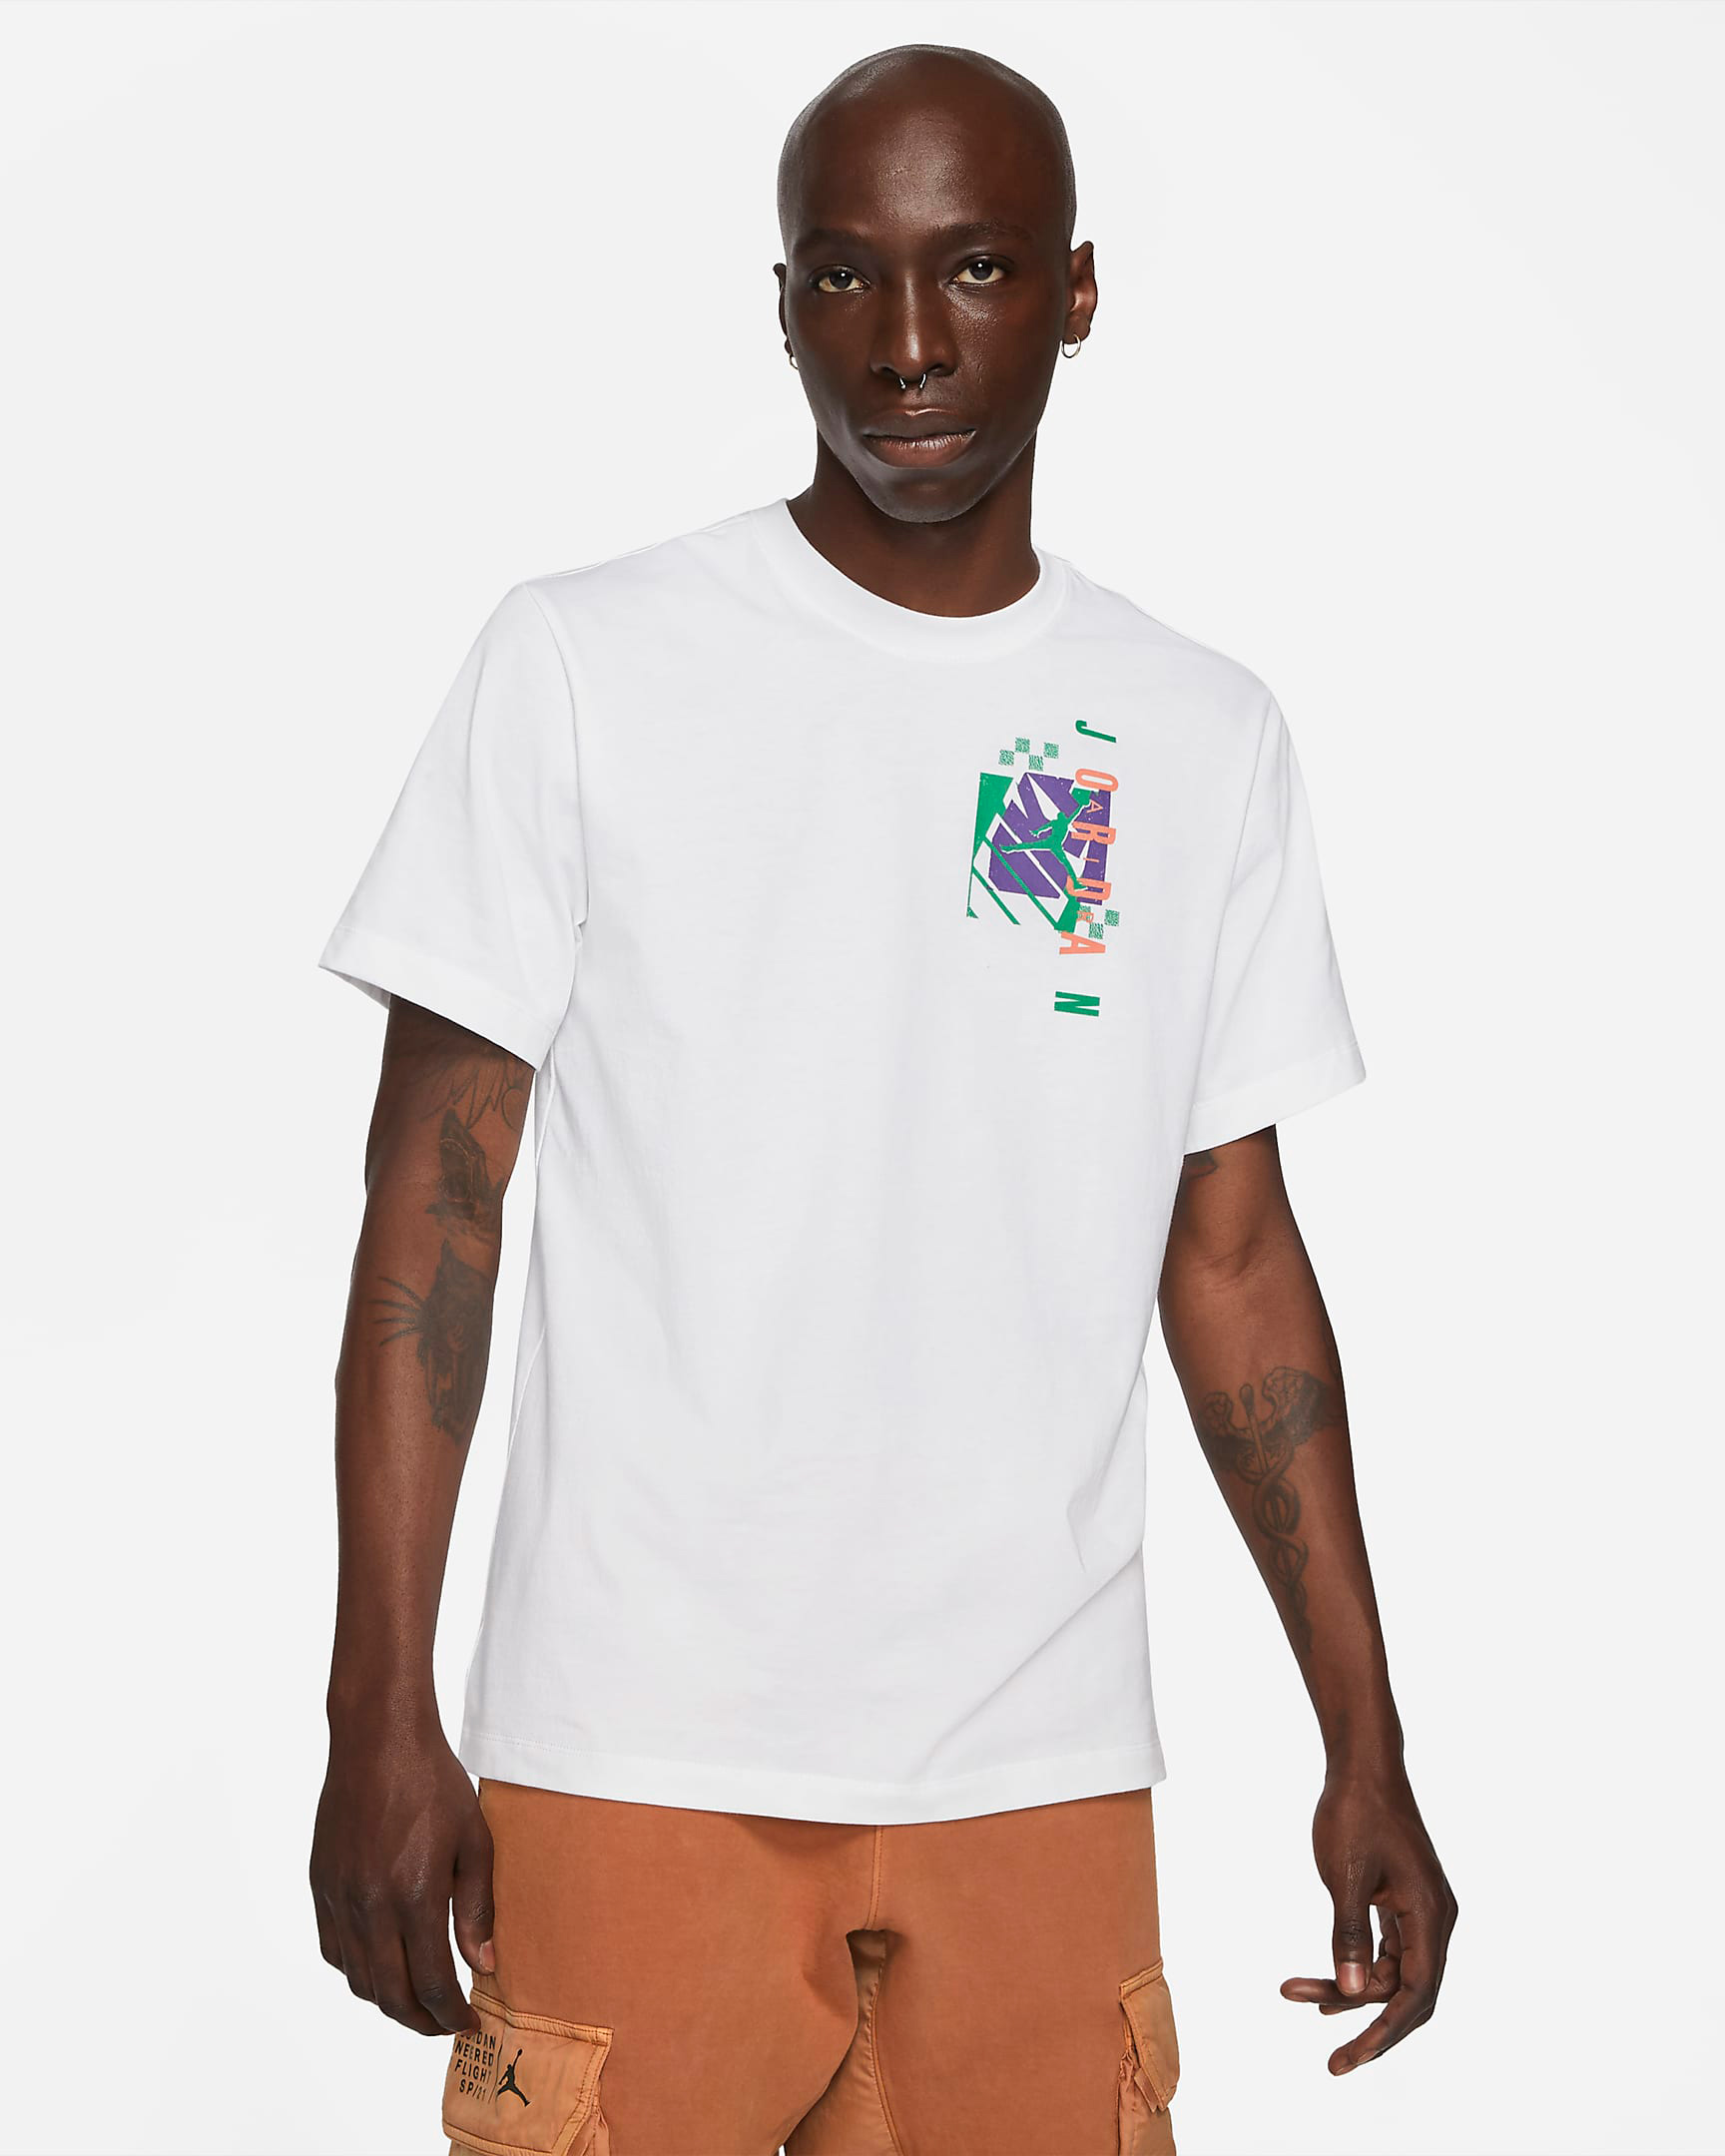 jordan-air-futura-shirt-white-purple-green-1